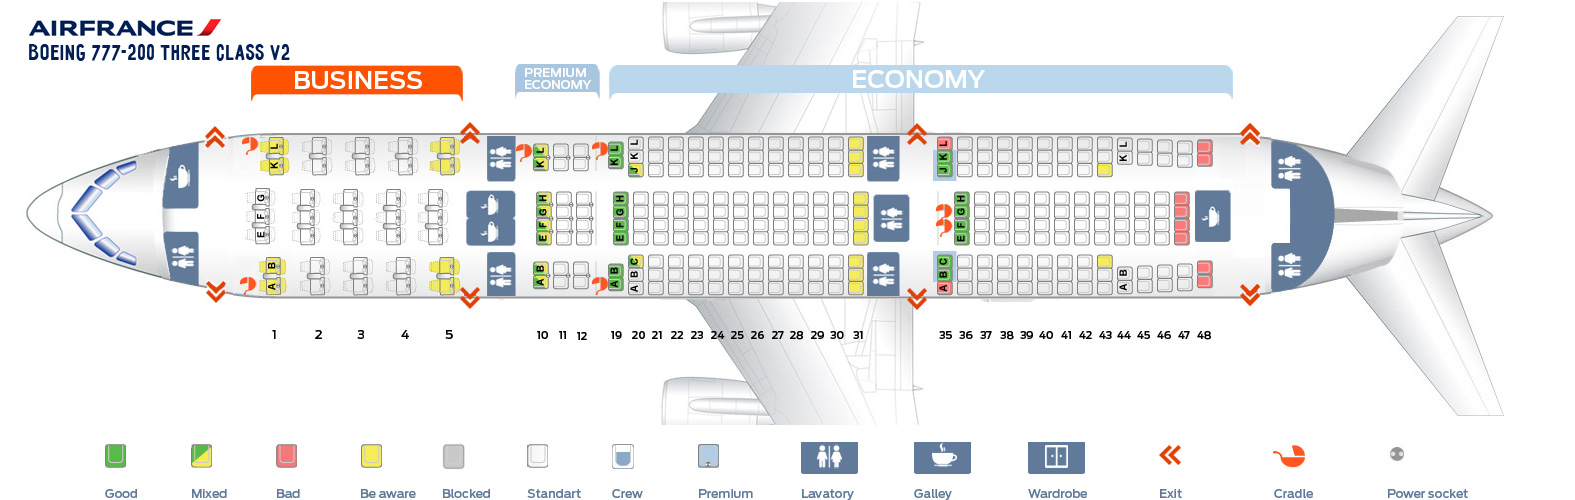 Seat map boeing 777 200 air france best seats in plane for Plan de cabine boeing 777 200 air france